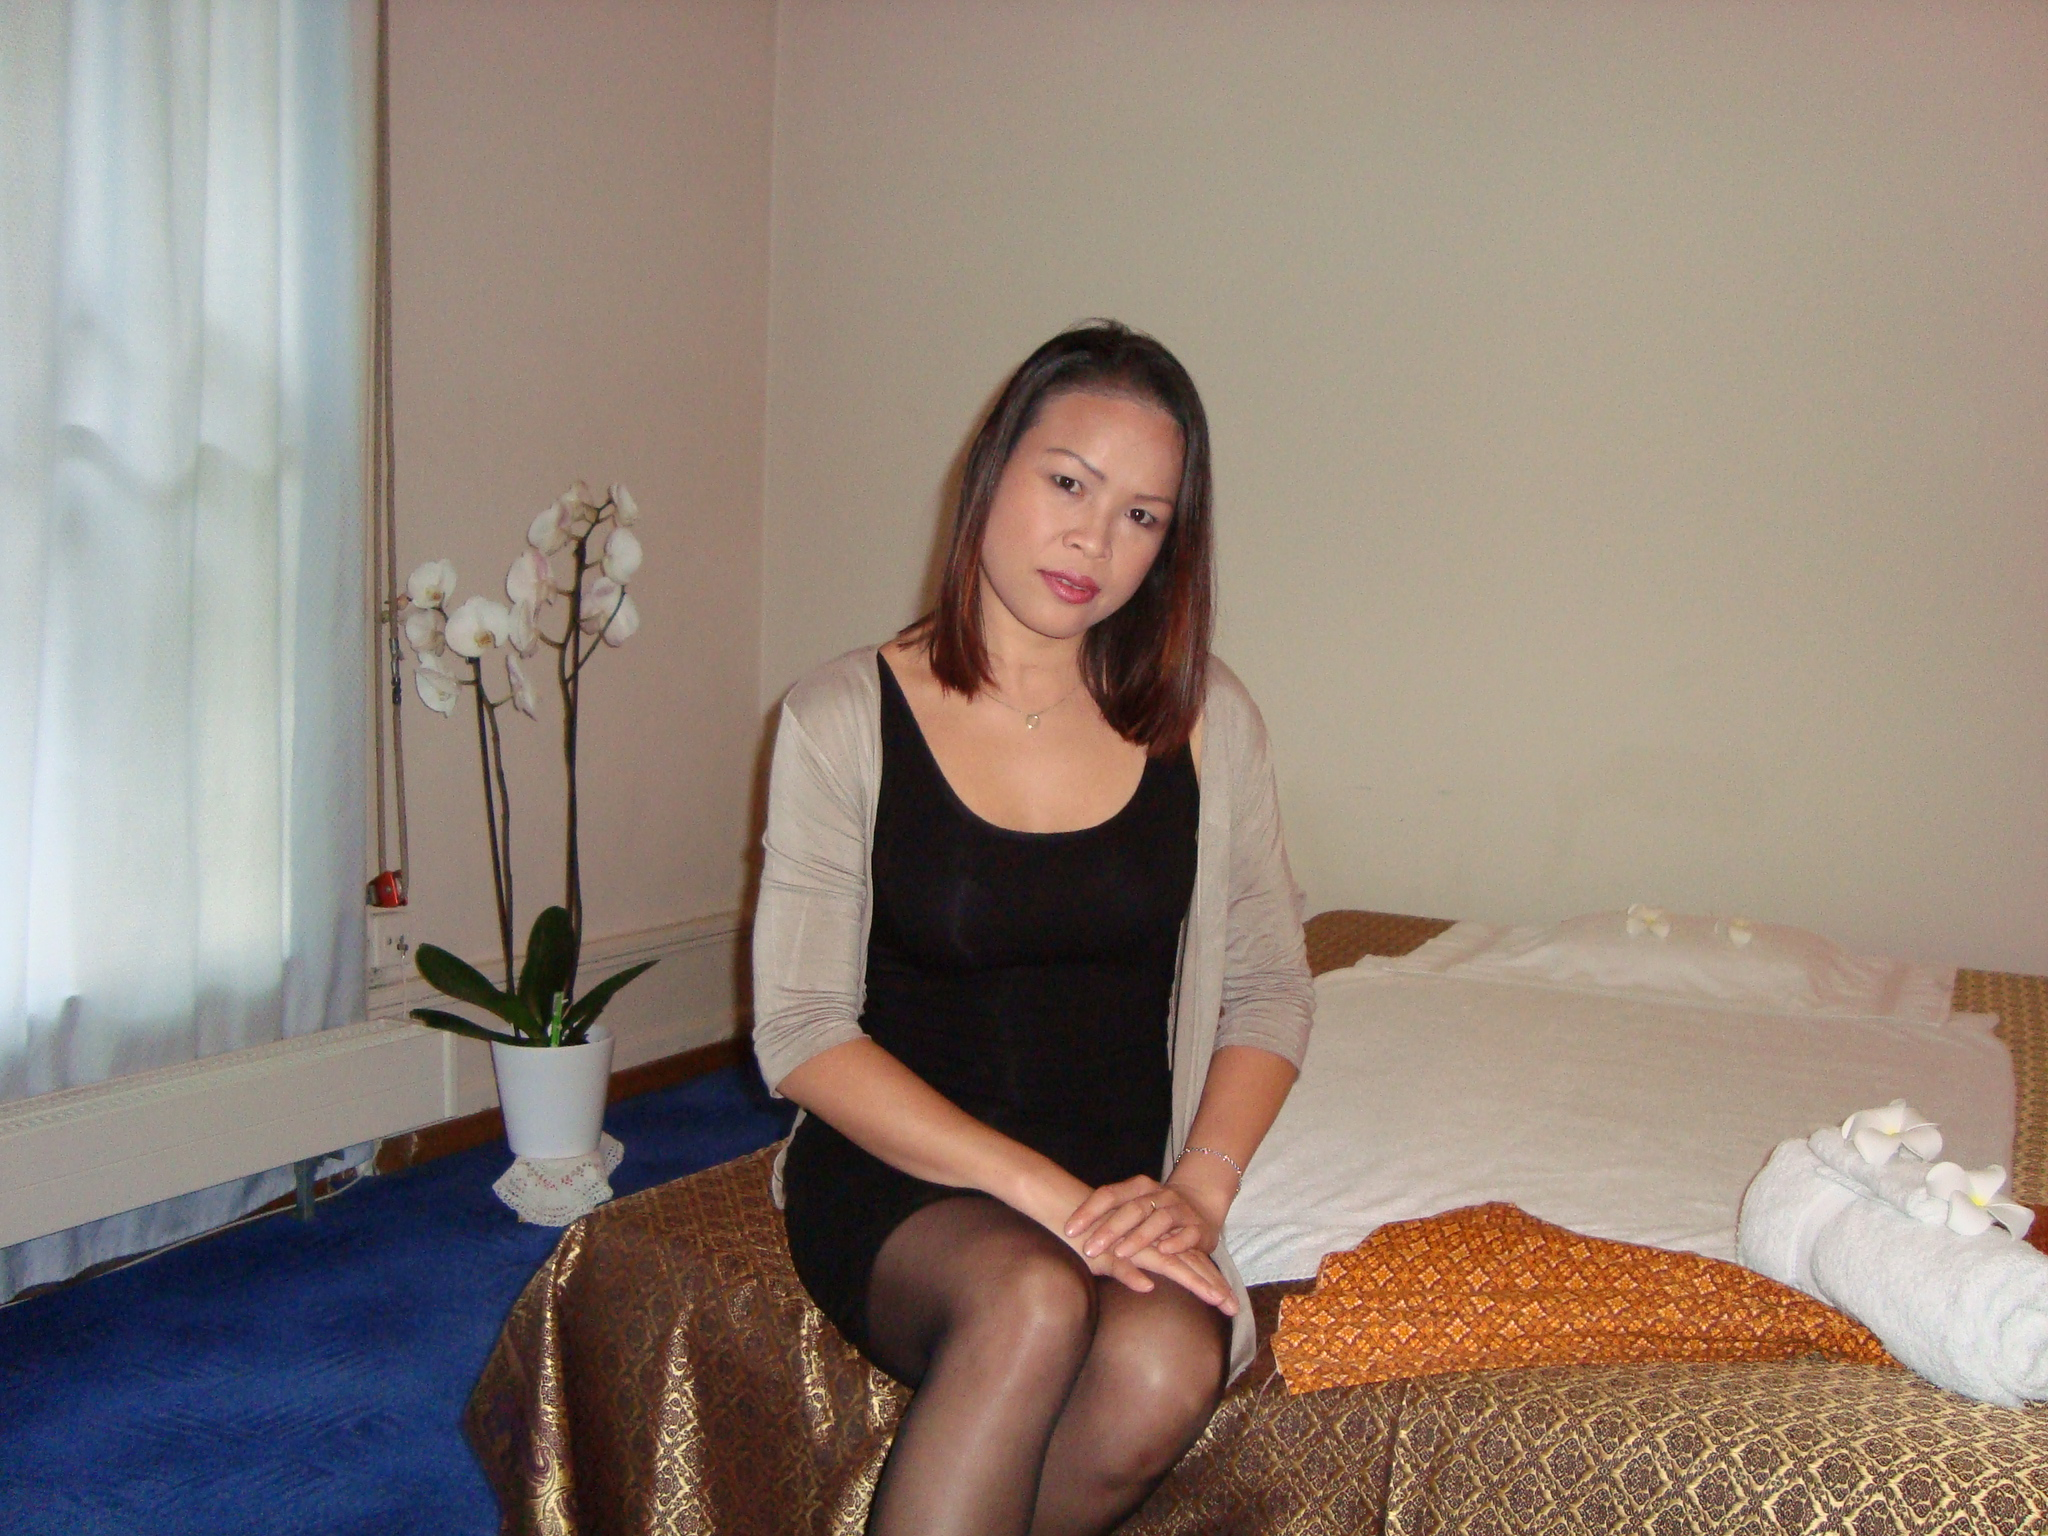 bilder tantra massage sext massage